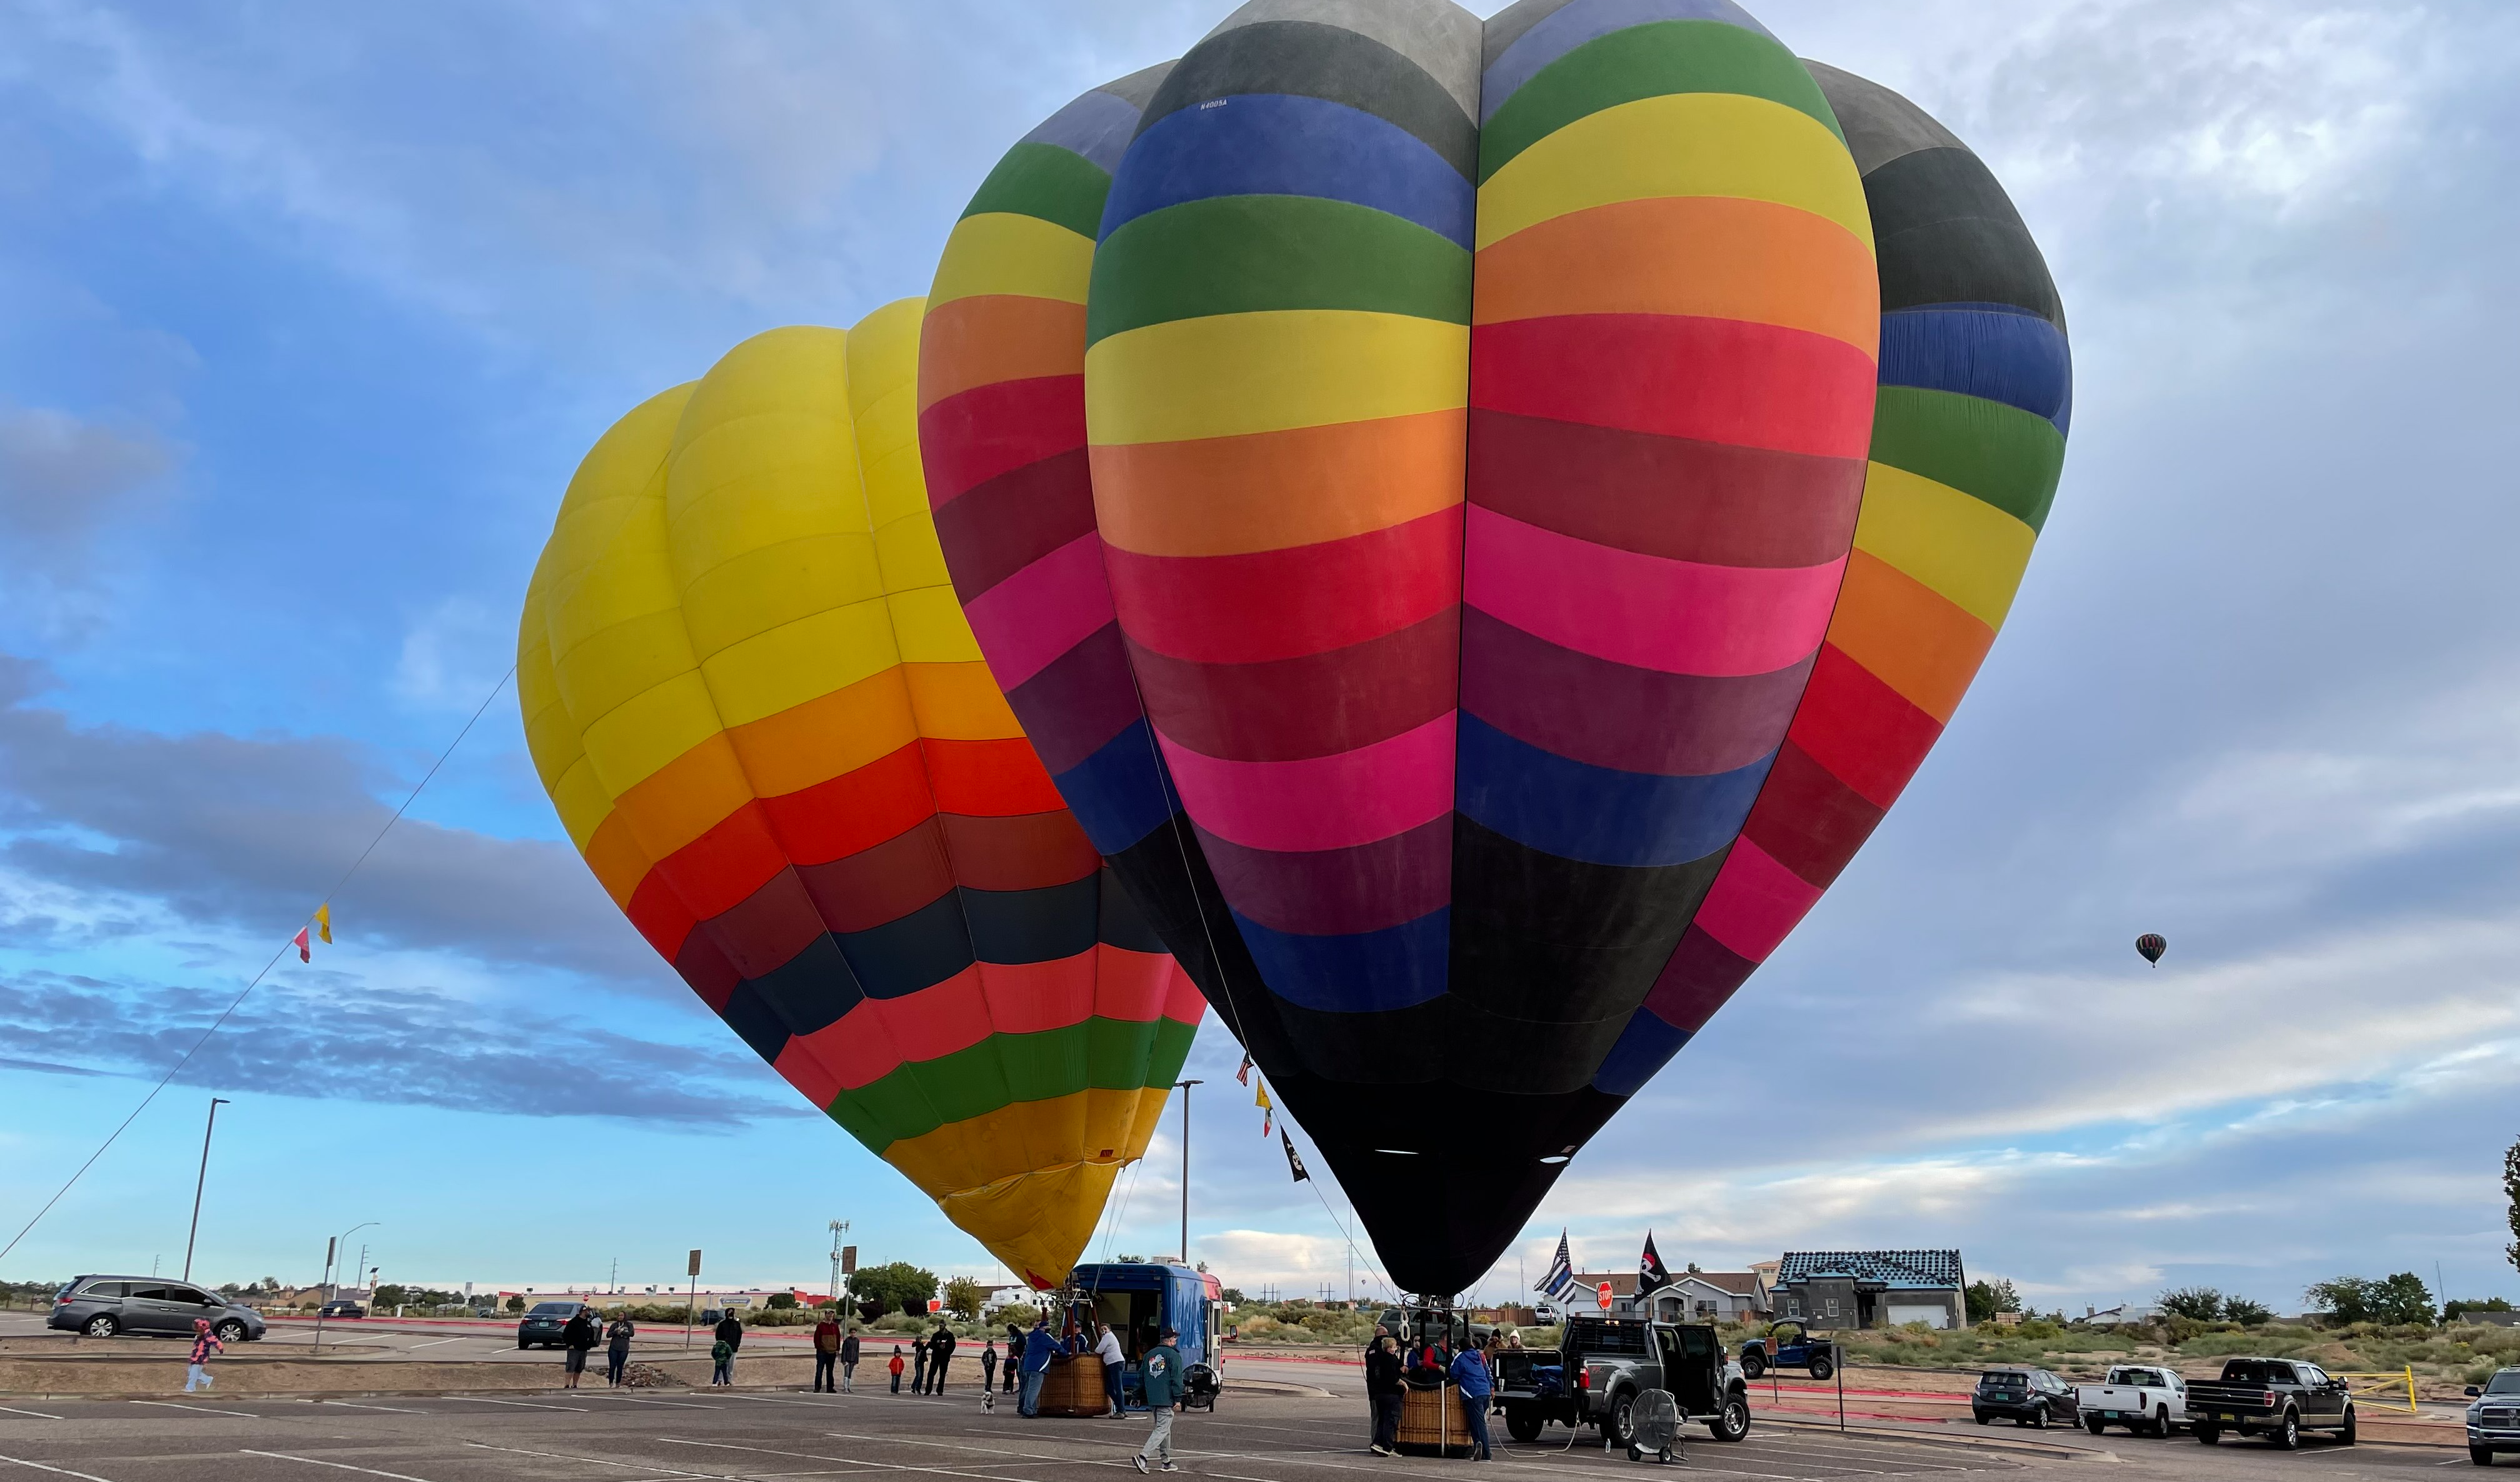 Hot air balloons at Maggie Cordova Elementary School for the Balloons Aloft event for 2021